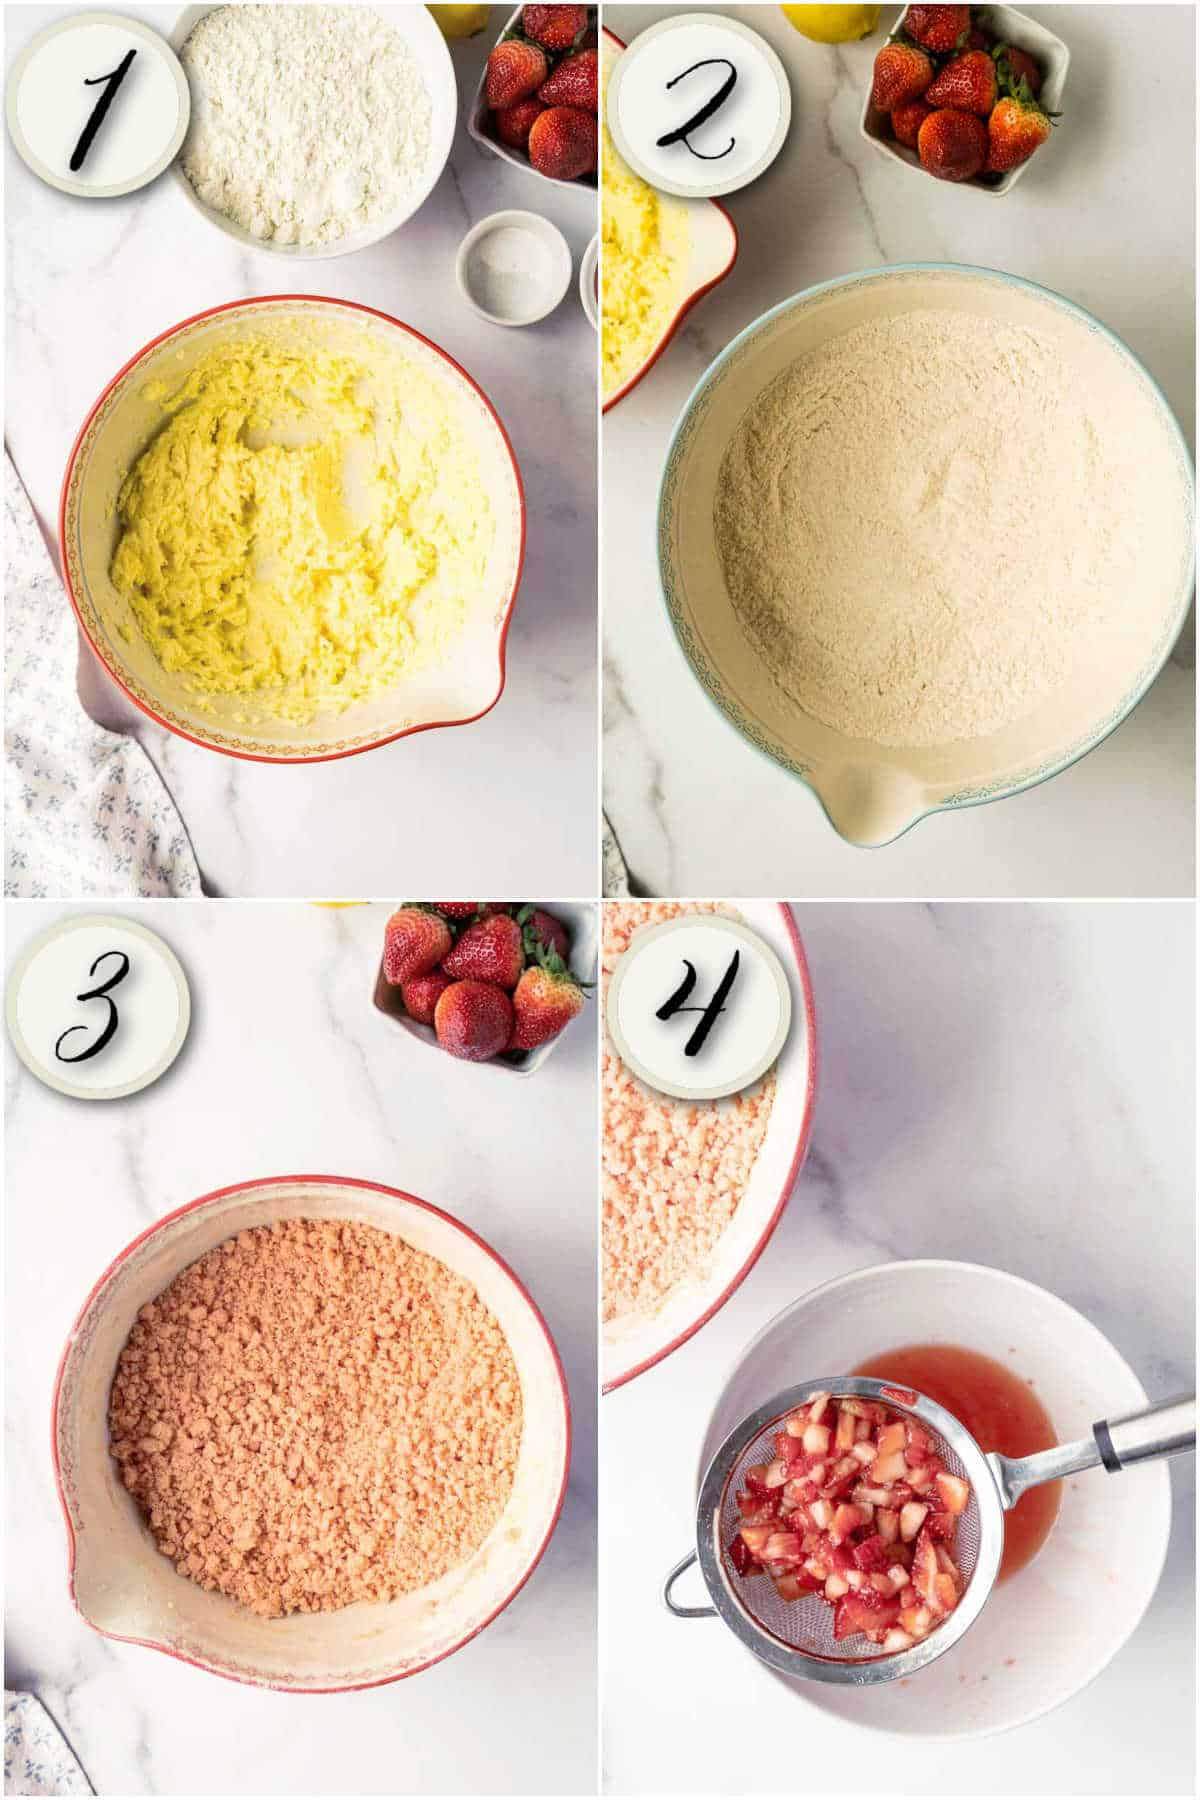 grid of 4 images- mixing strawberries and sugar, beating butter, mixing dry ingredients, crumbly cookie dough